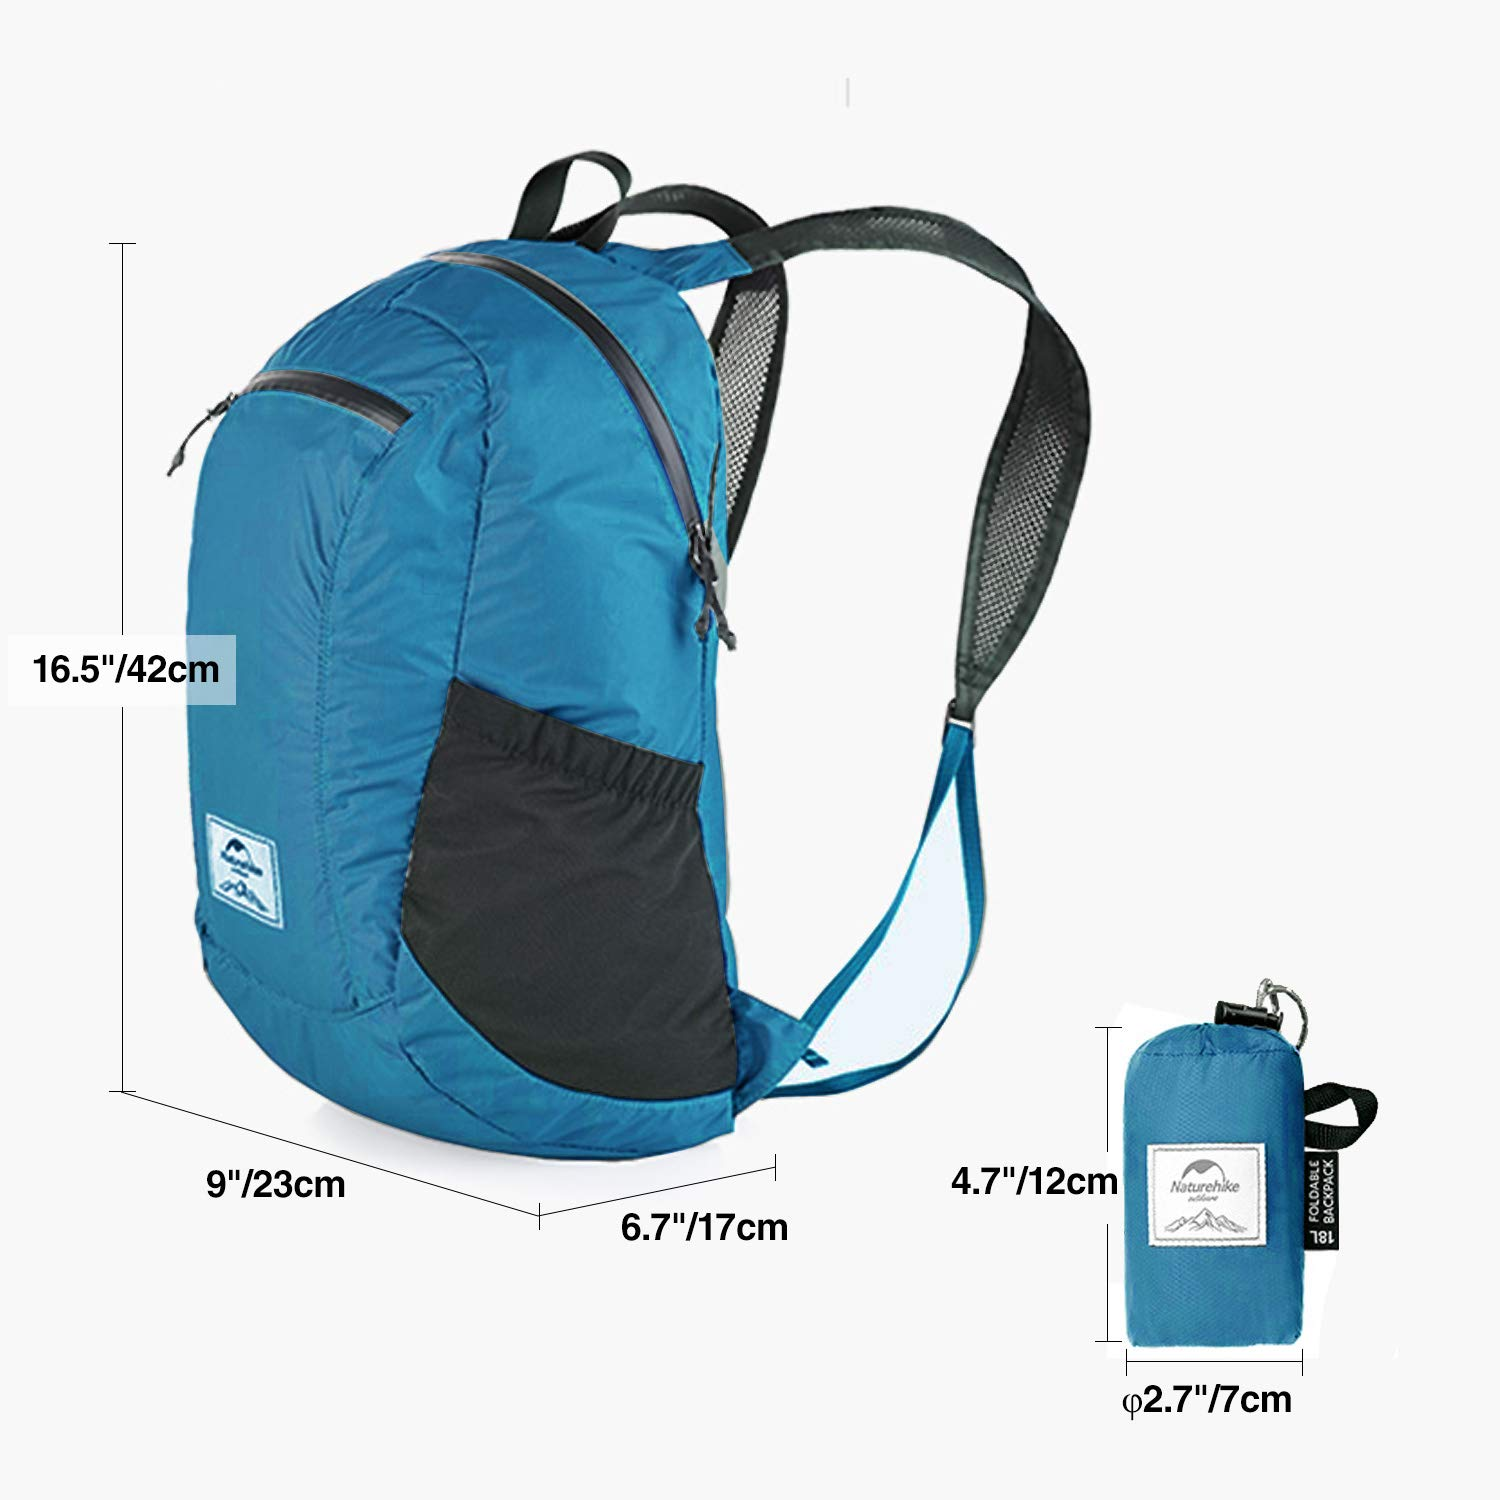 Collapsible Nylon Daypack Great for Outdoor Hiking Travel REDCAMP 18L Waterproof Ultralight Packable Backpack Blue